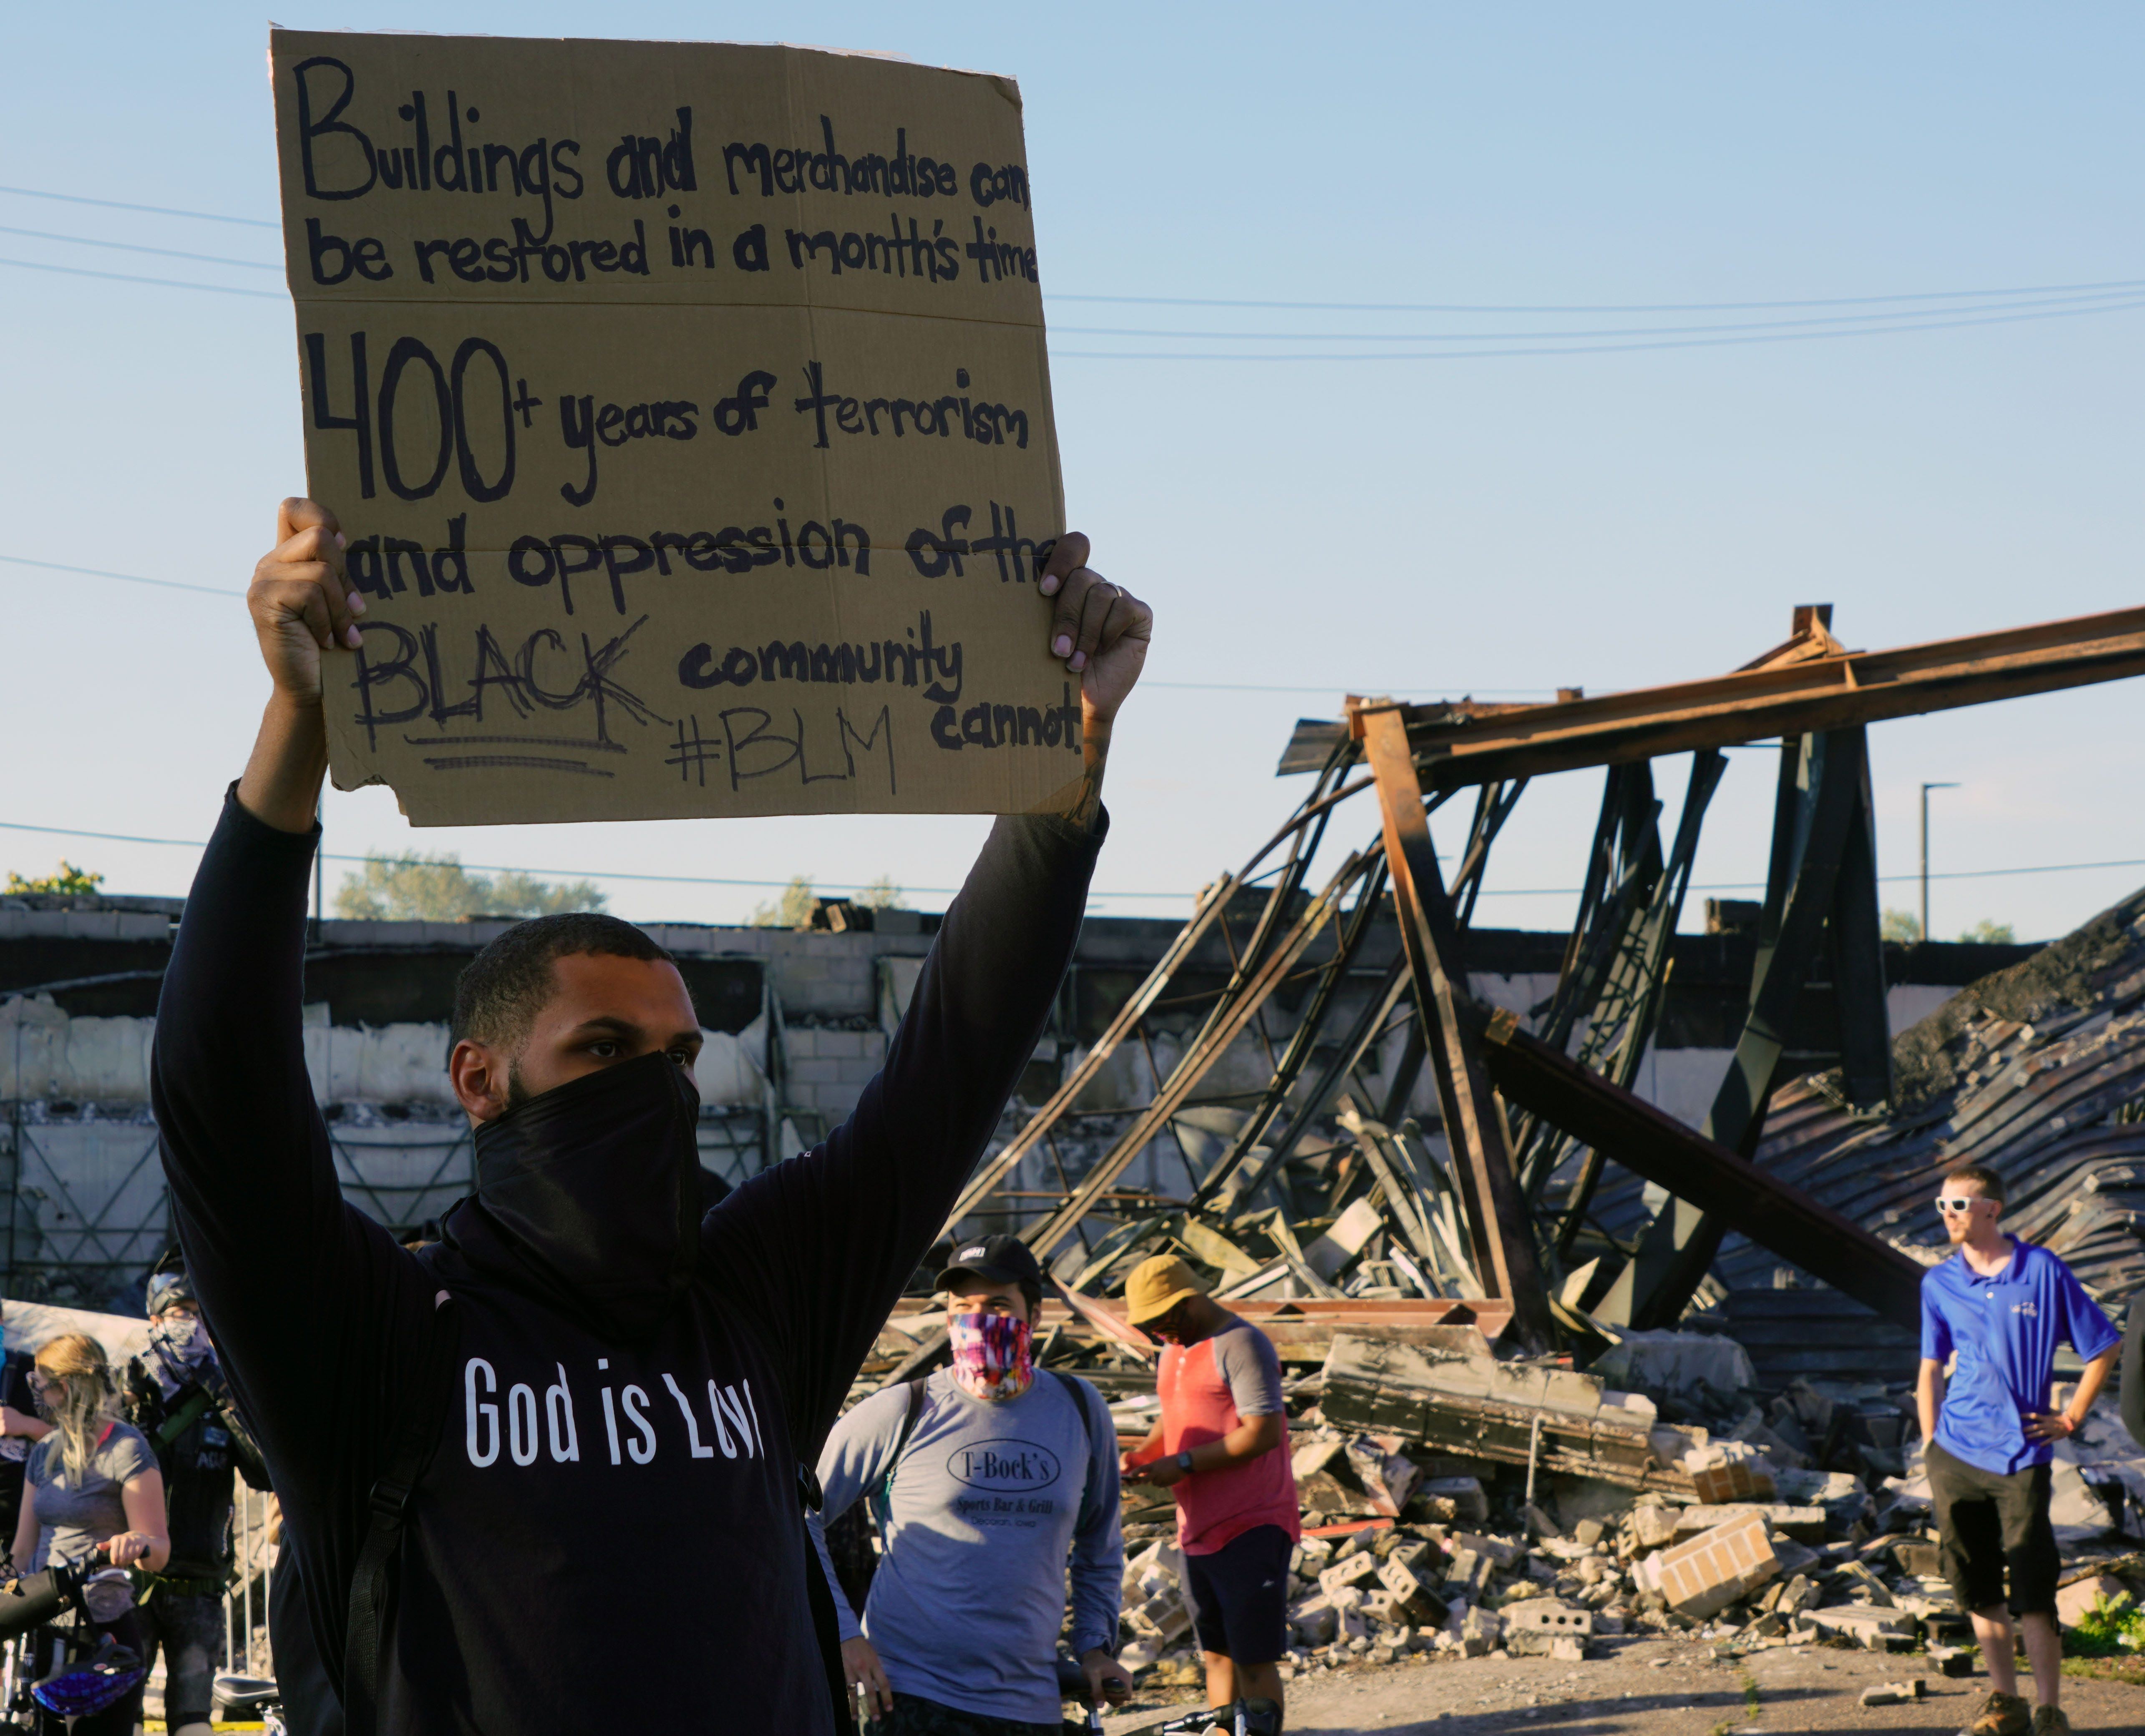 A protester holding a sign in front of a burned-out building Minneapolis during protests over the death of George Floyd on May 28, 2020.